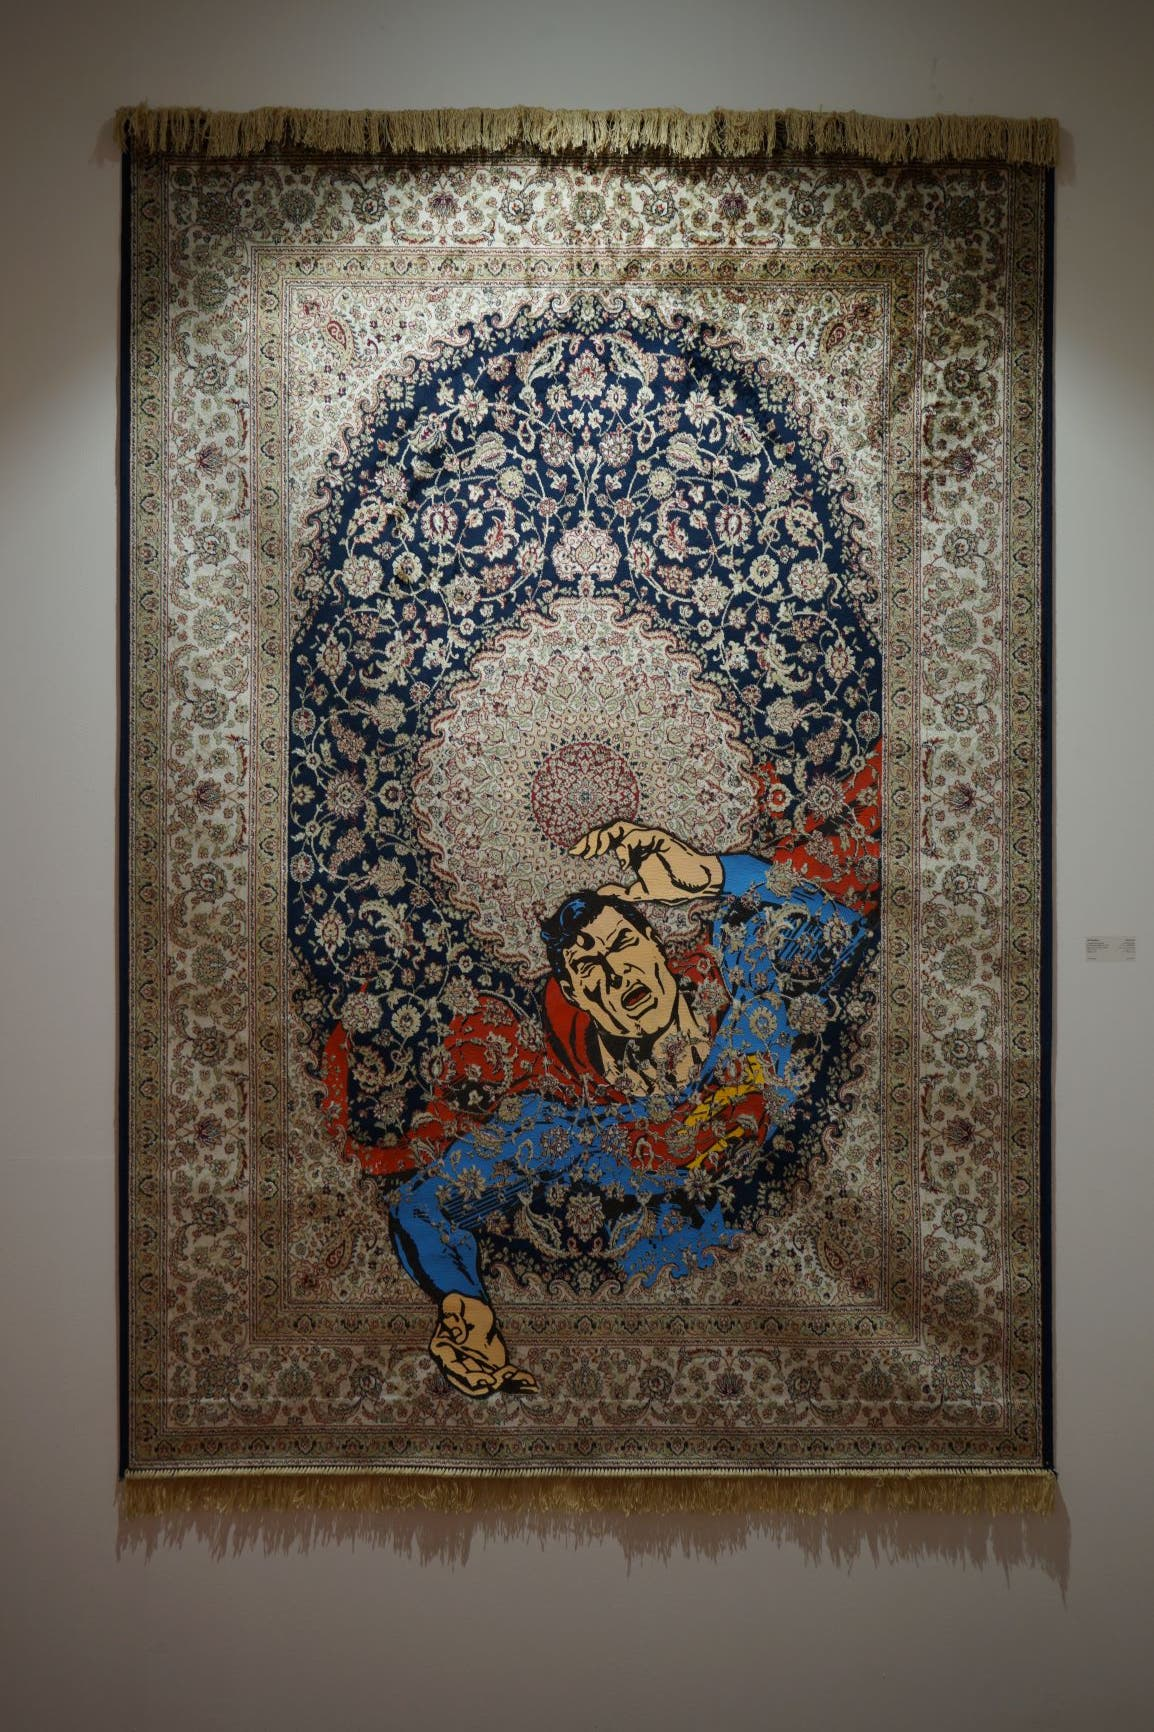 'I fought the internet and the internet won 2, 2019' by Ali Chaaban. Displayed at the Hafez Gallery booth at Art Dubai 2021 in DIFC. (Al Arabiya English)